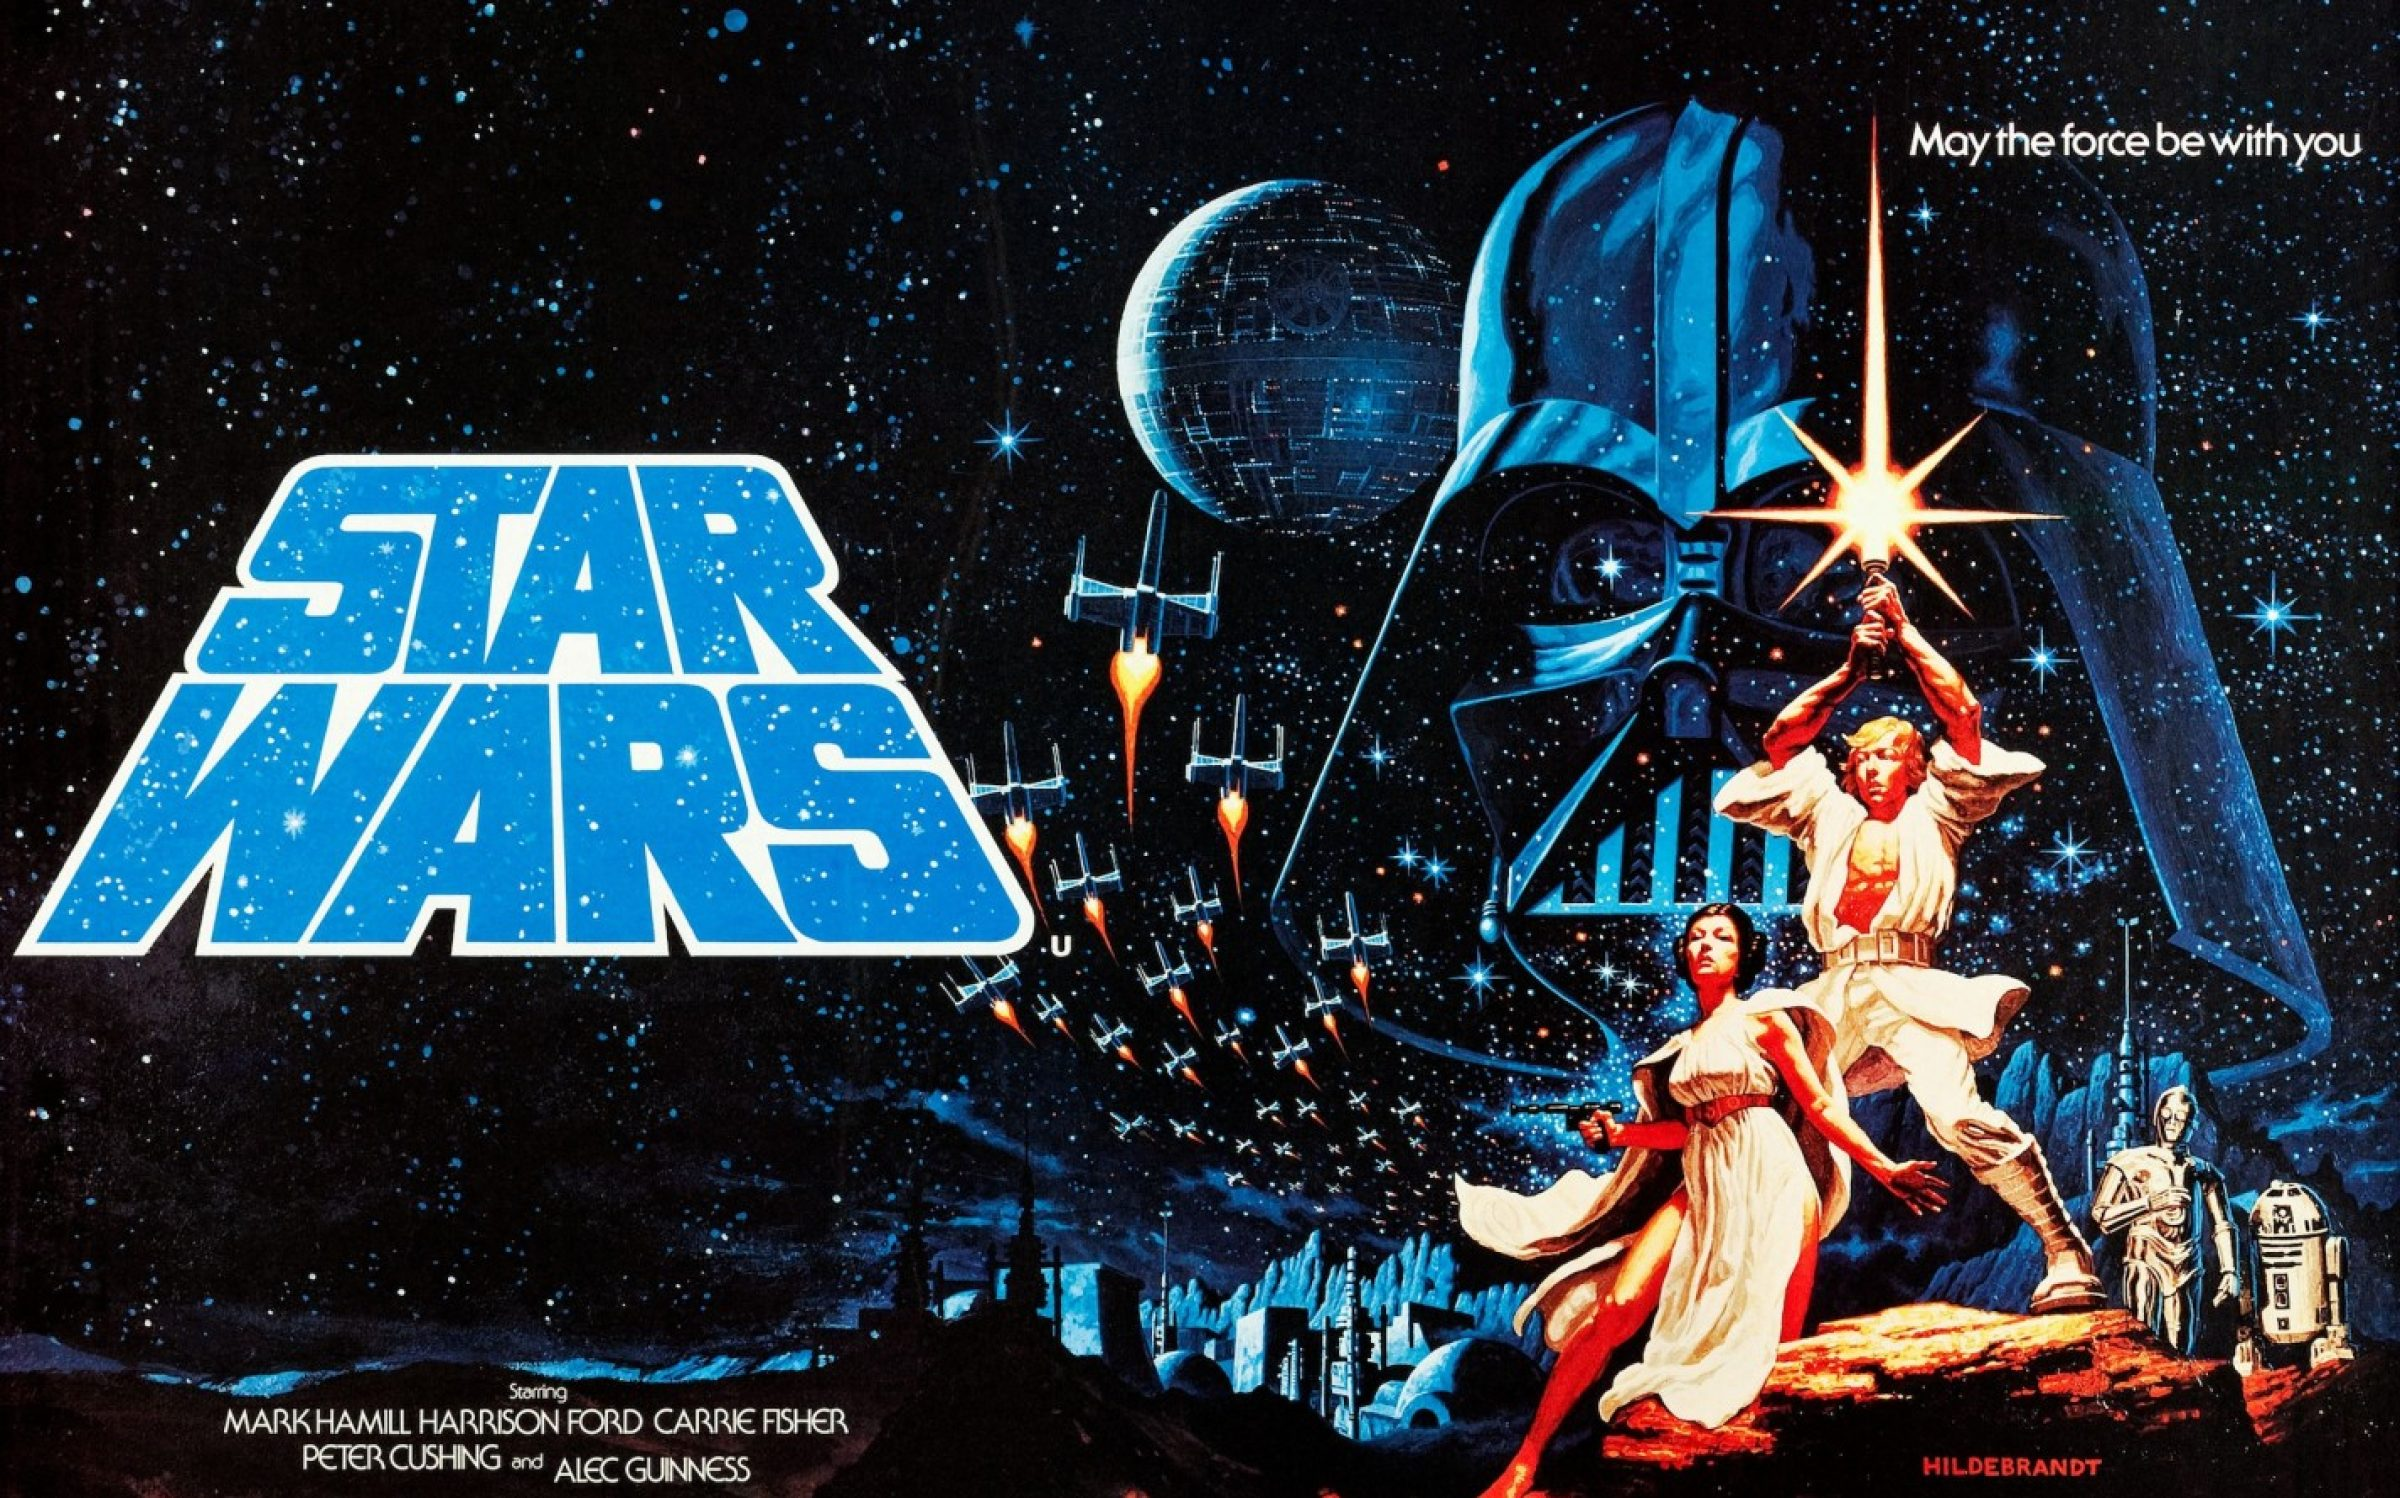 Poster art for 'Star Wars: A New Hope', 1977. Credit: LMPC via Getty Images.